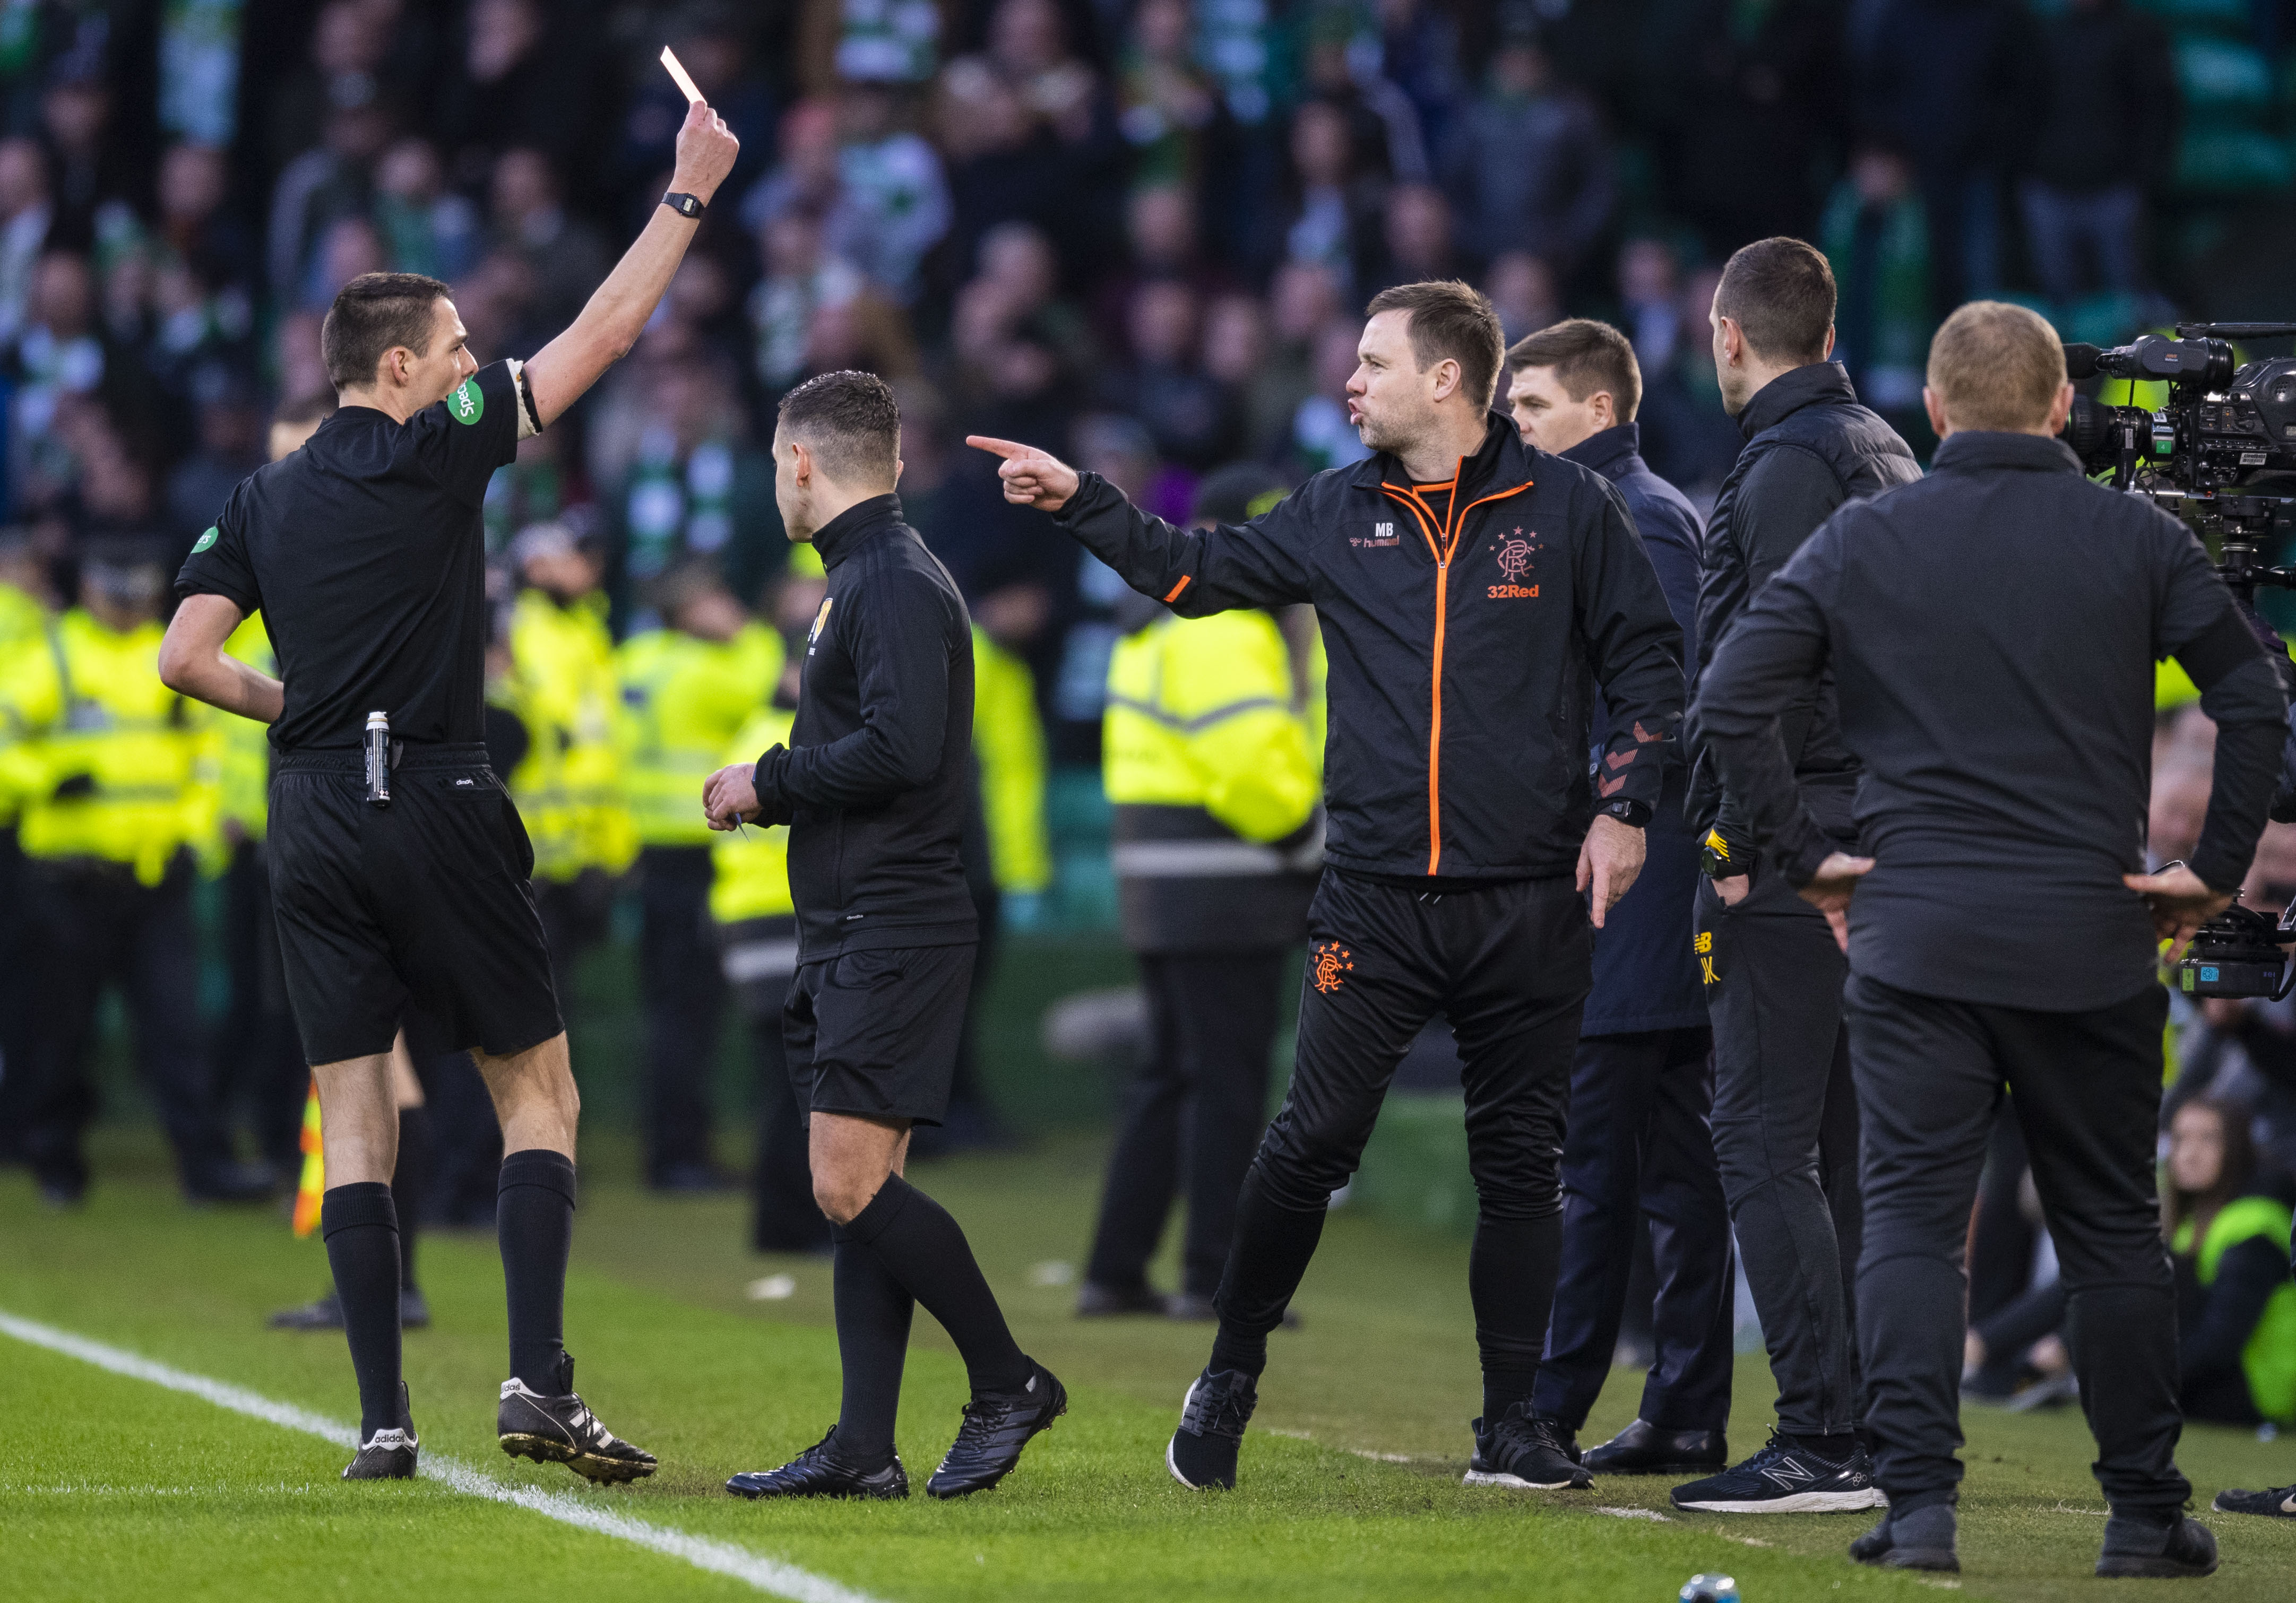 Referee Kevin Clancy sends off first team coach Michael Beale (right) during match between Celtic and Rangers